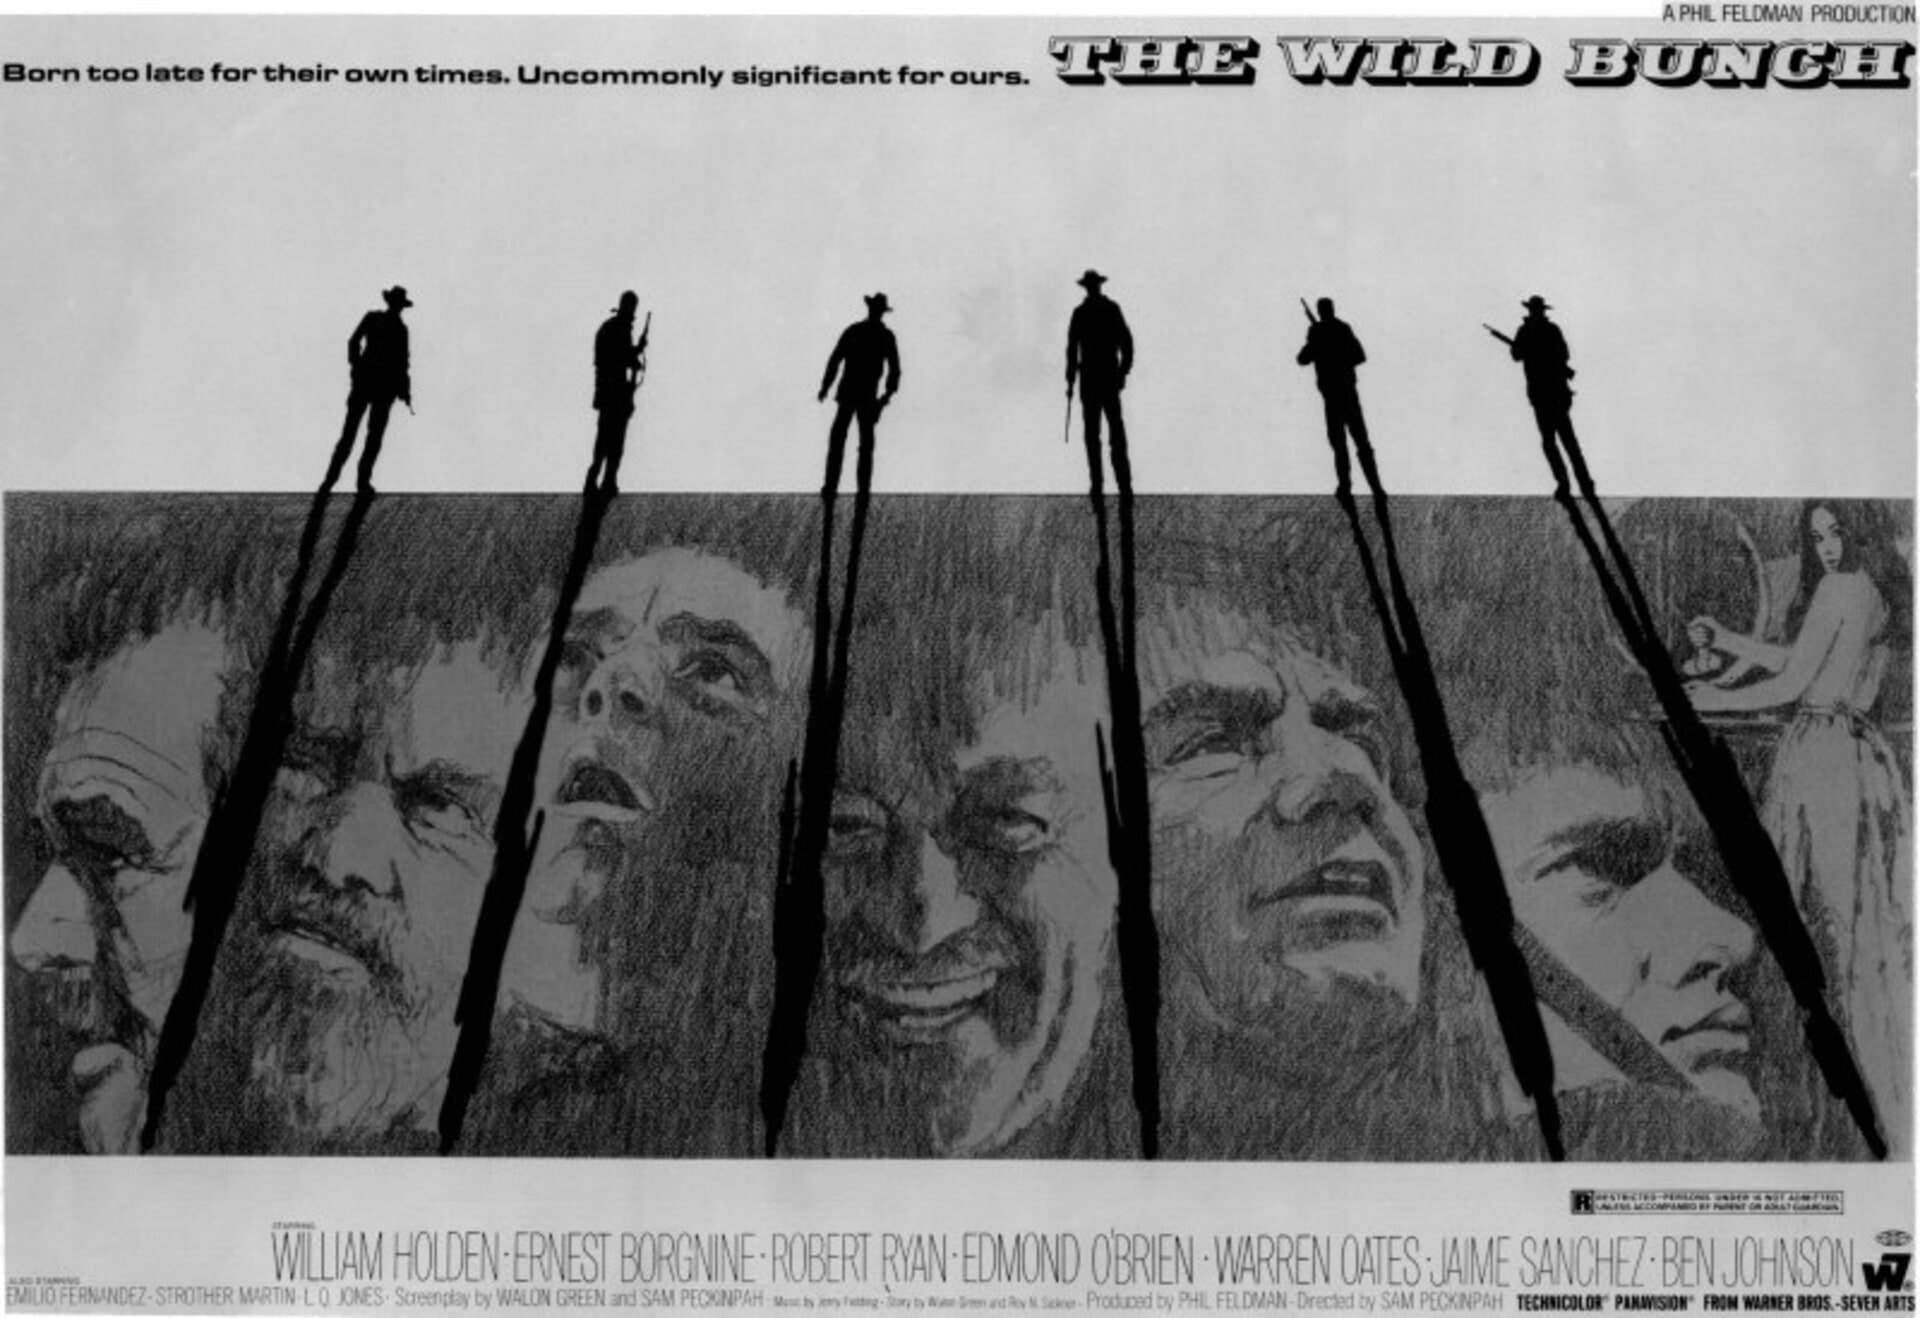 The Wild Bunch - Poster 13